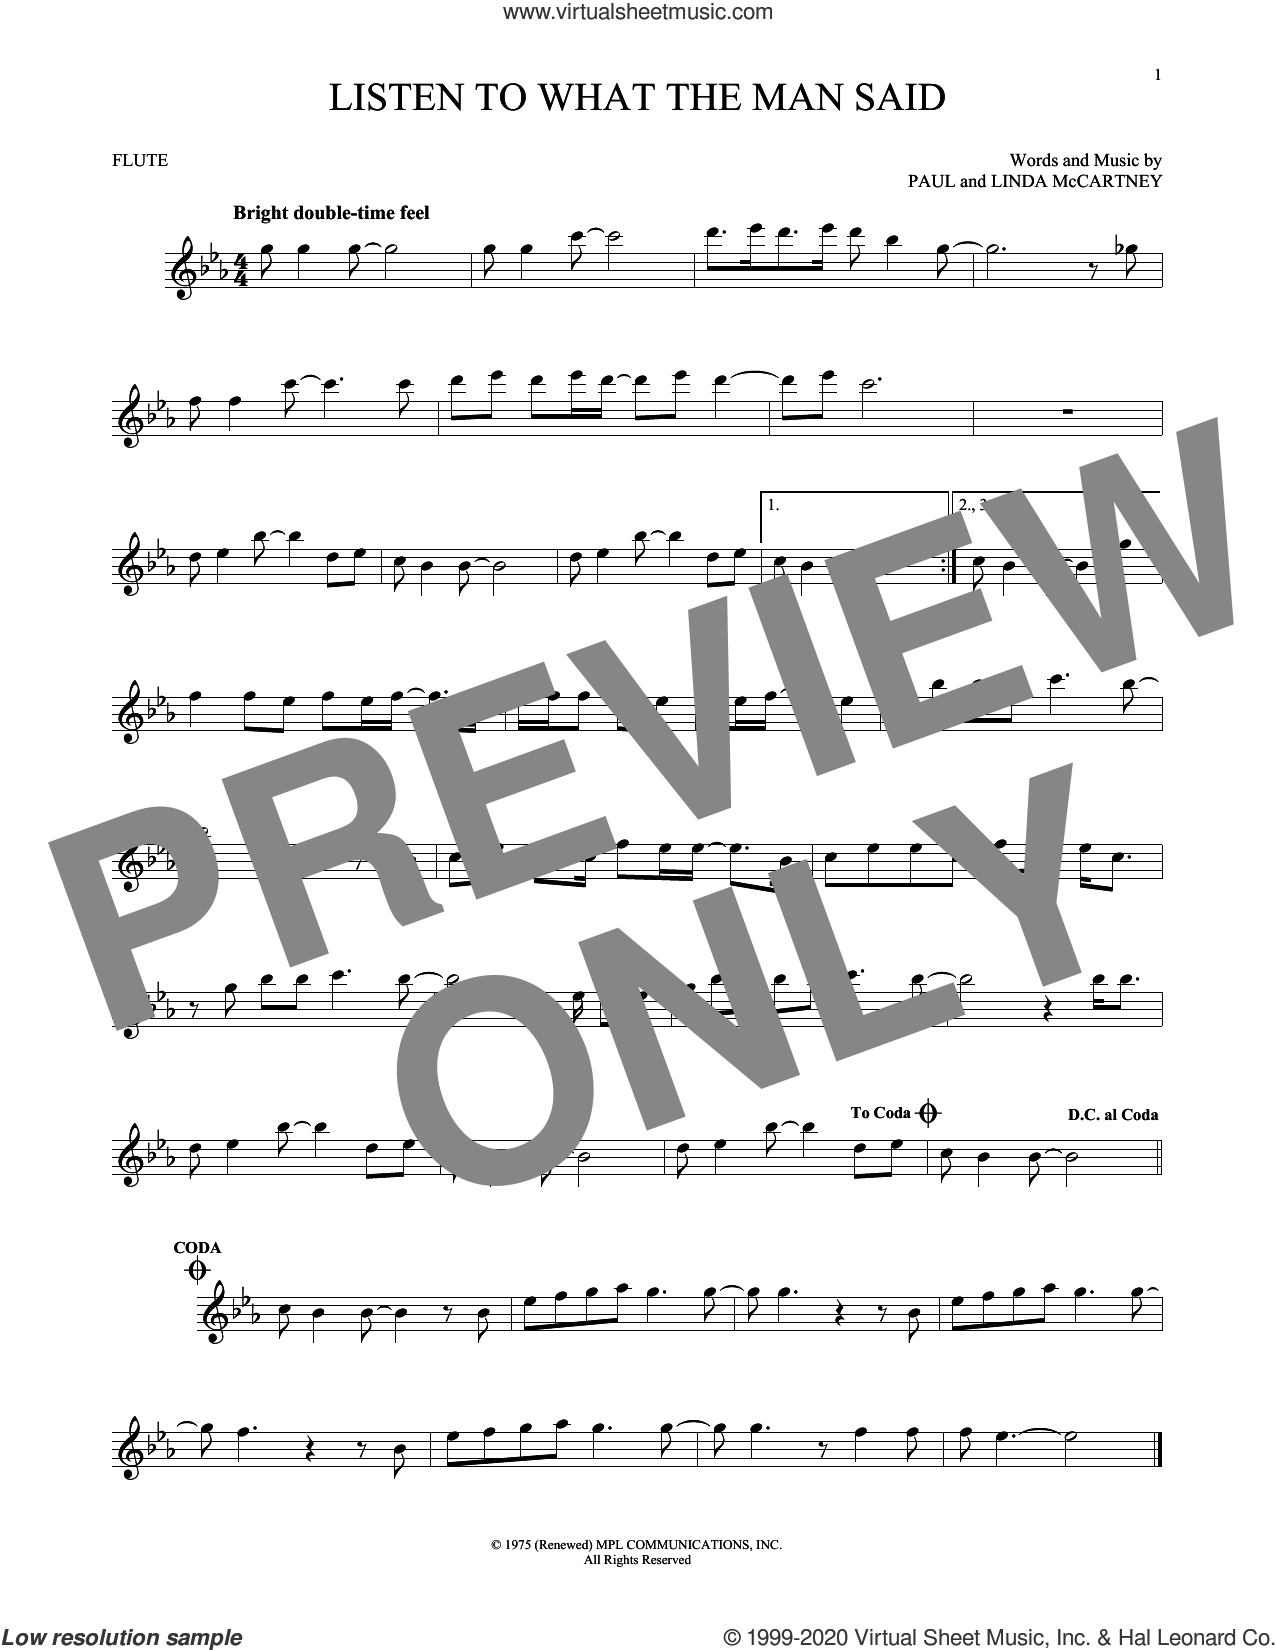 Listen To What The Man Said sheet music for flute solo by Wings, Linda McCartney and Paul McCartney, intermediate skill level